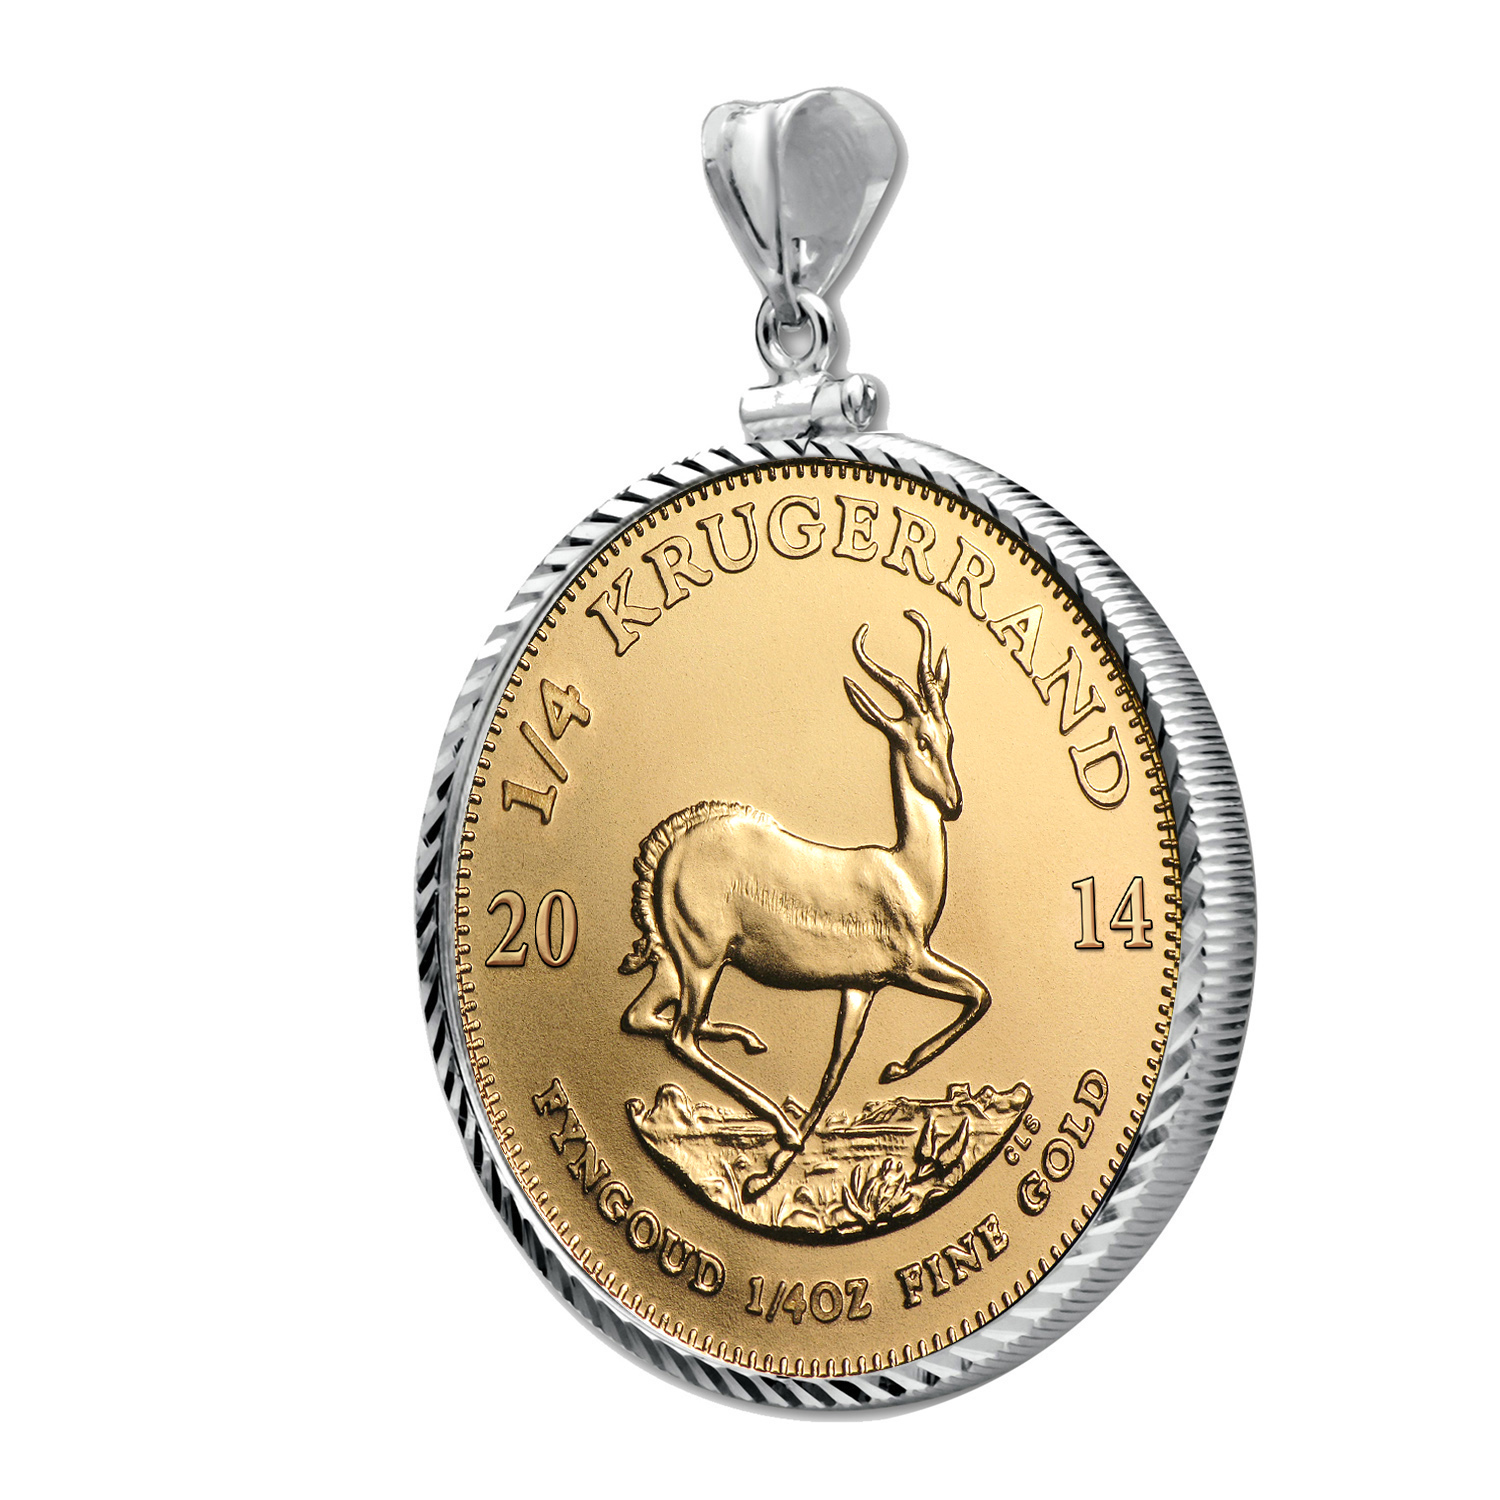 2014 1/4 oz Gold Krugerrand White Gold Pendant (Diamond-ScrewTop)